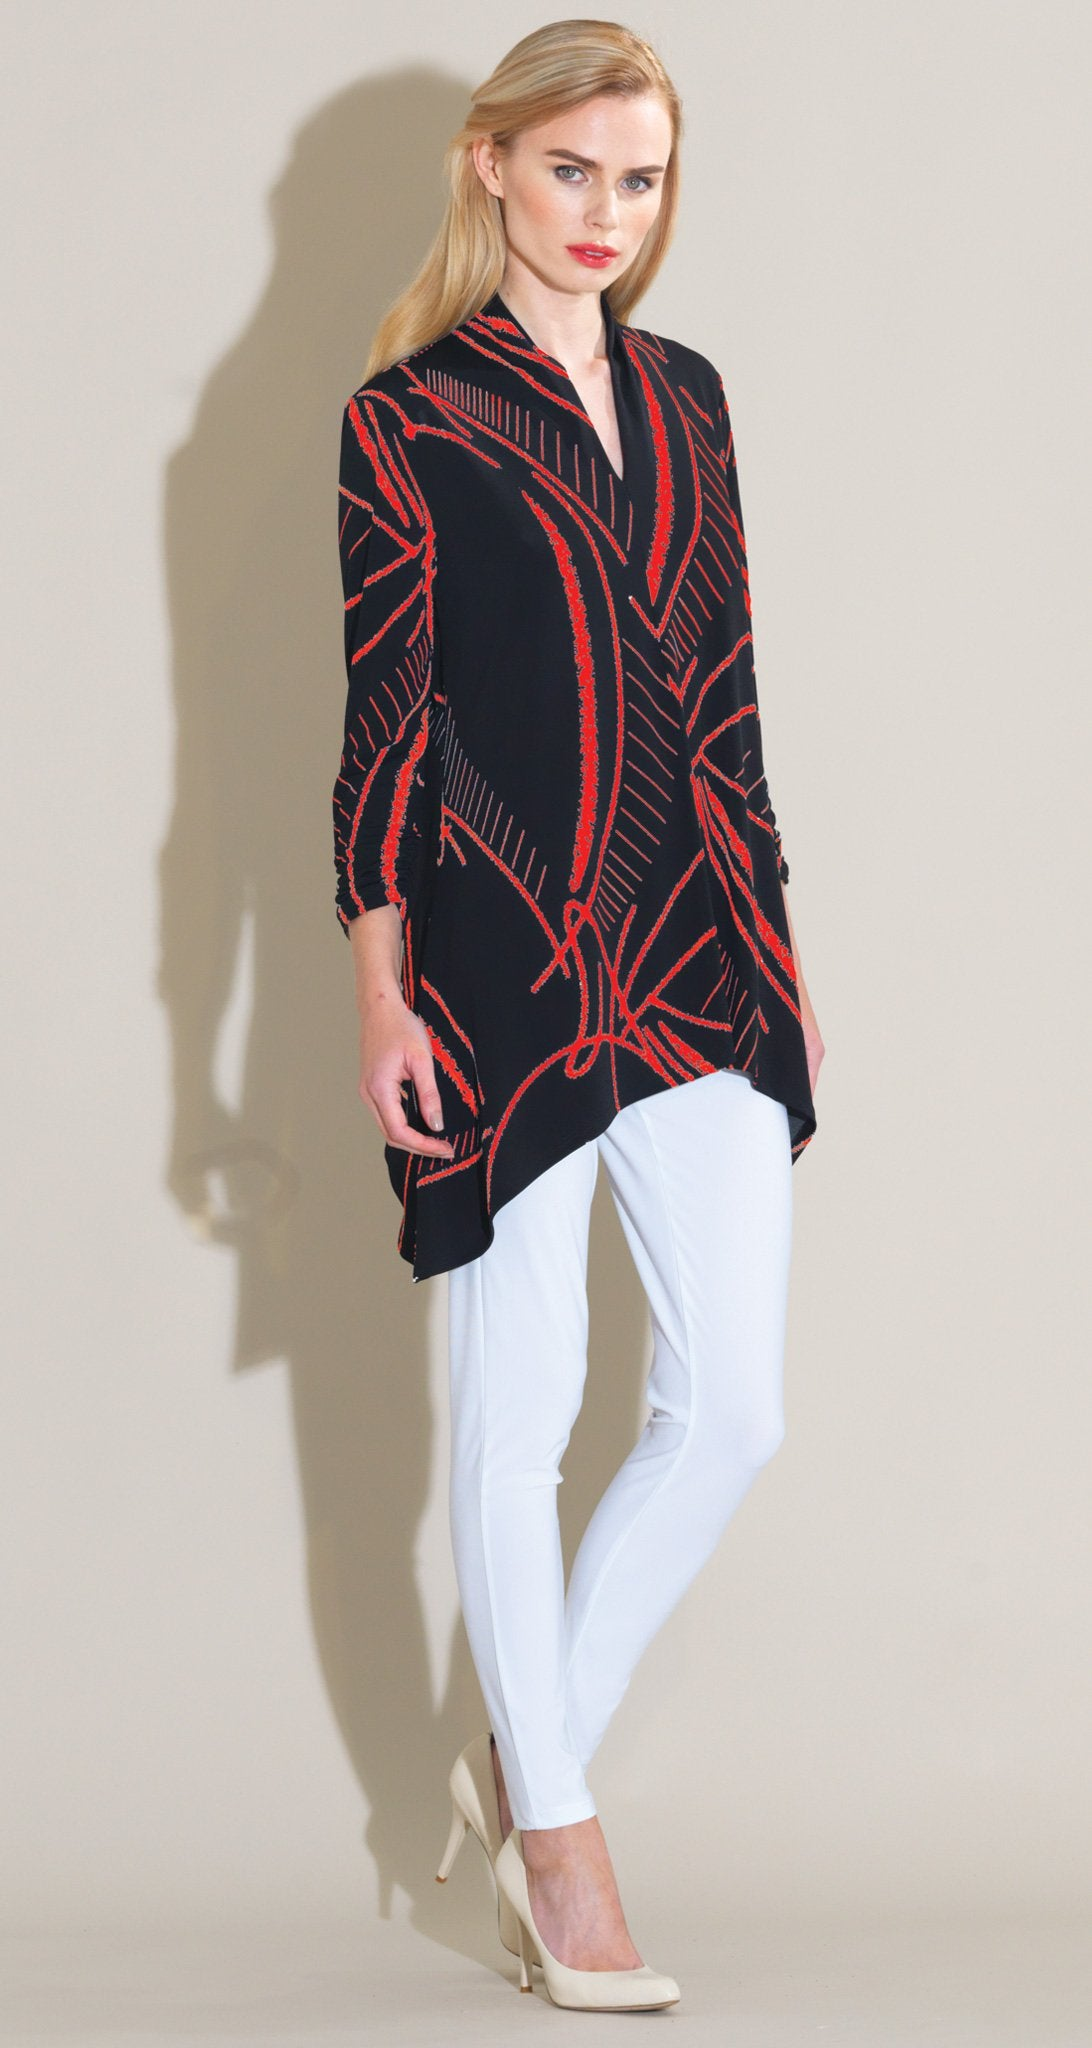 Fish Bone Sketch Print Narrow V-Neck Tunic - Black/Red - Final Sale! - Clara Sunwoo